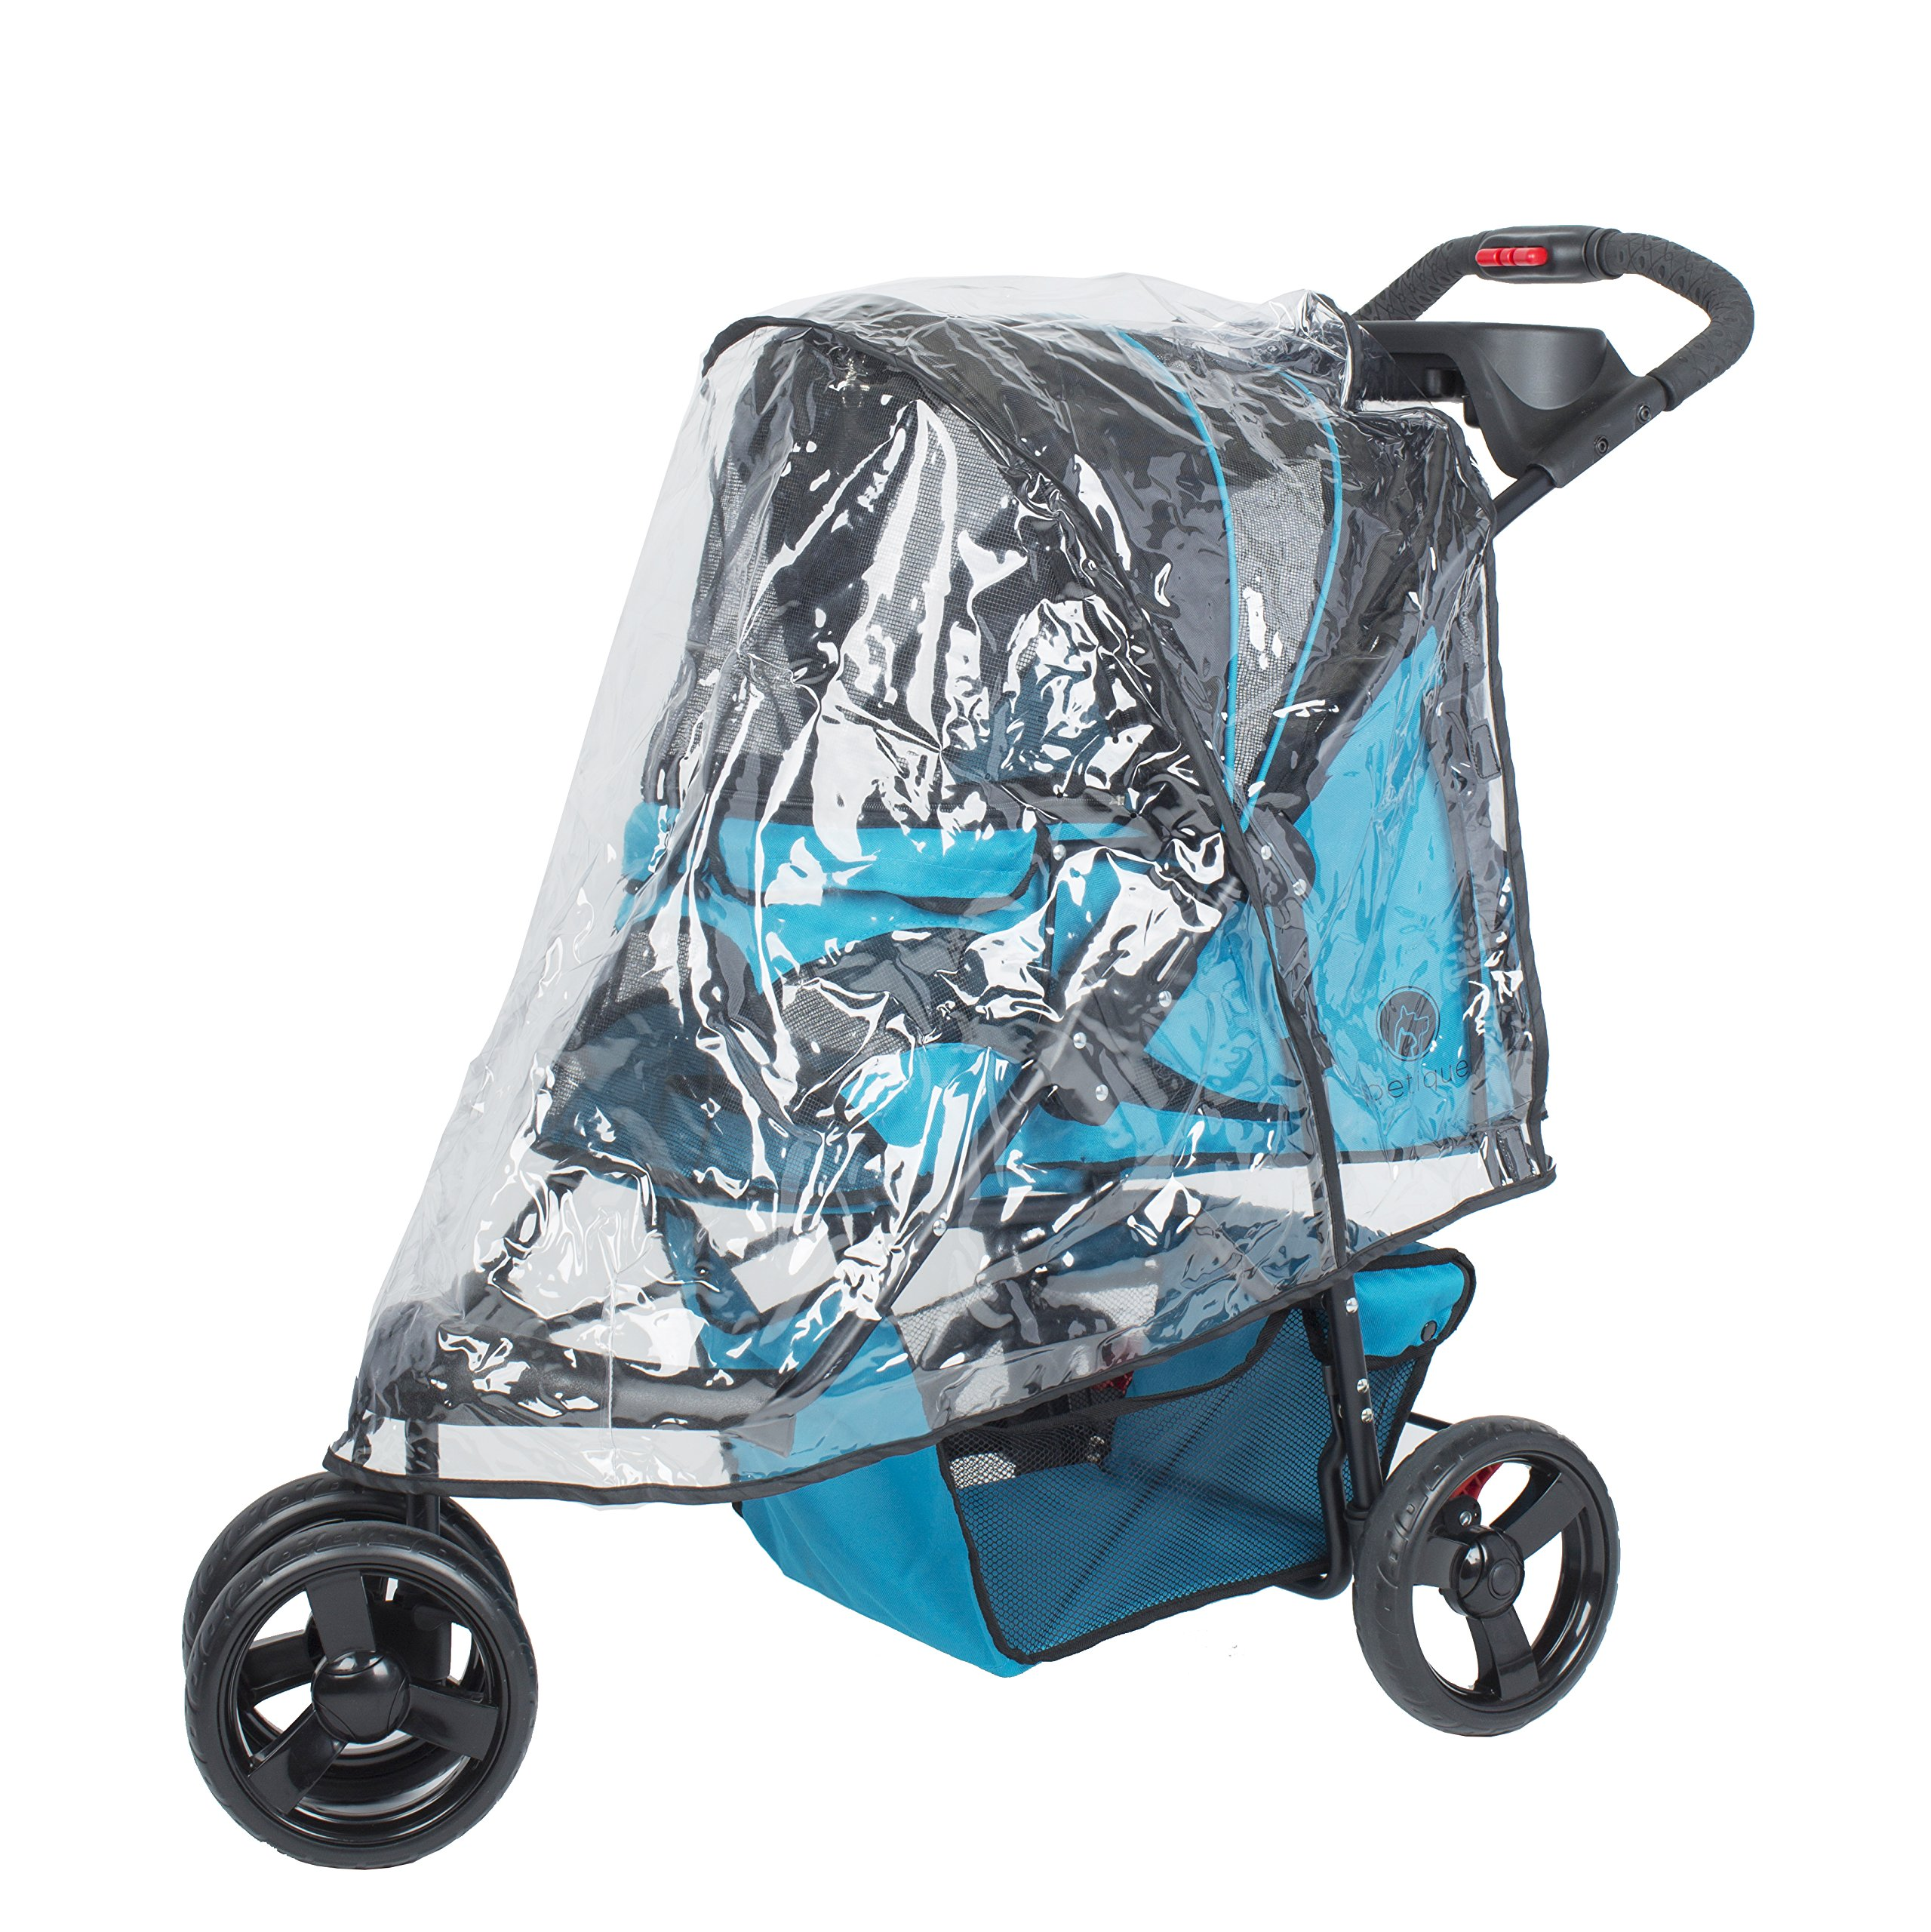 PETIQUE RC02000000 PVC Rain Cover for Pet Jogger, Clear, One Size